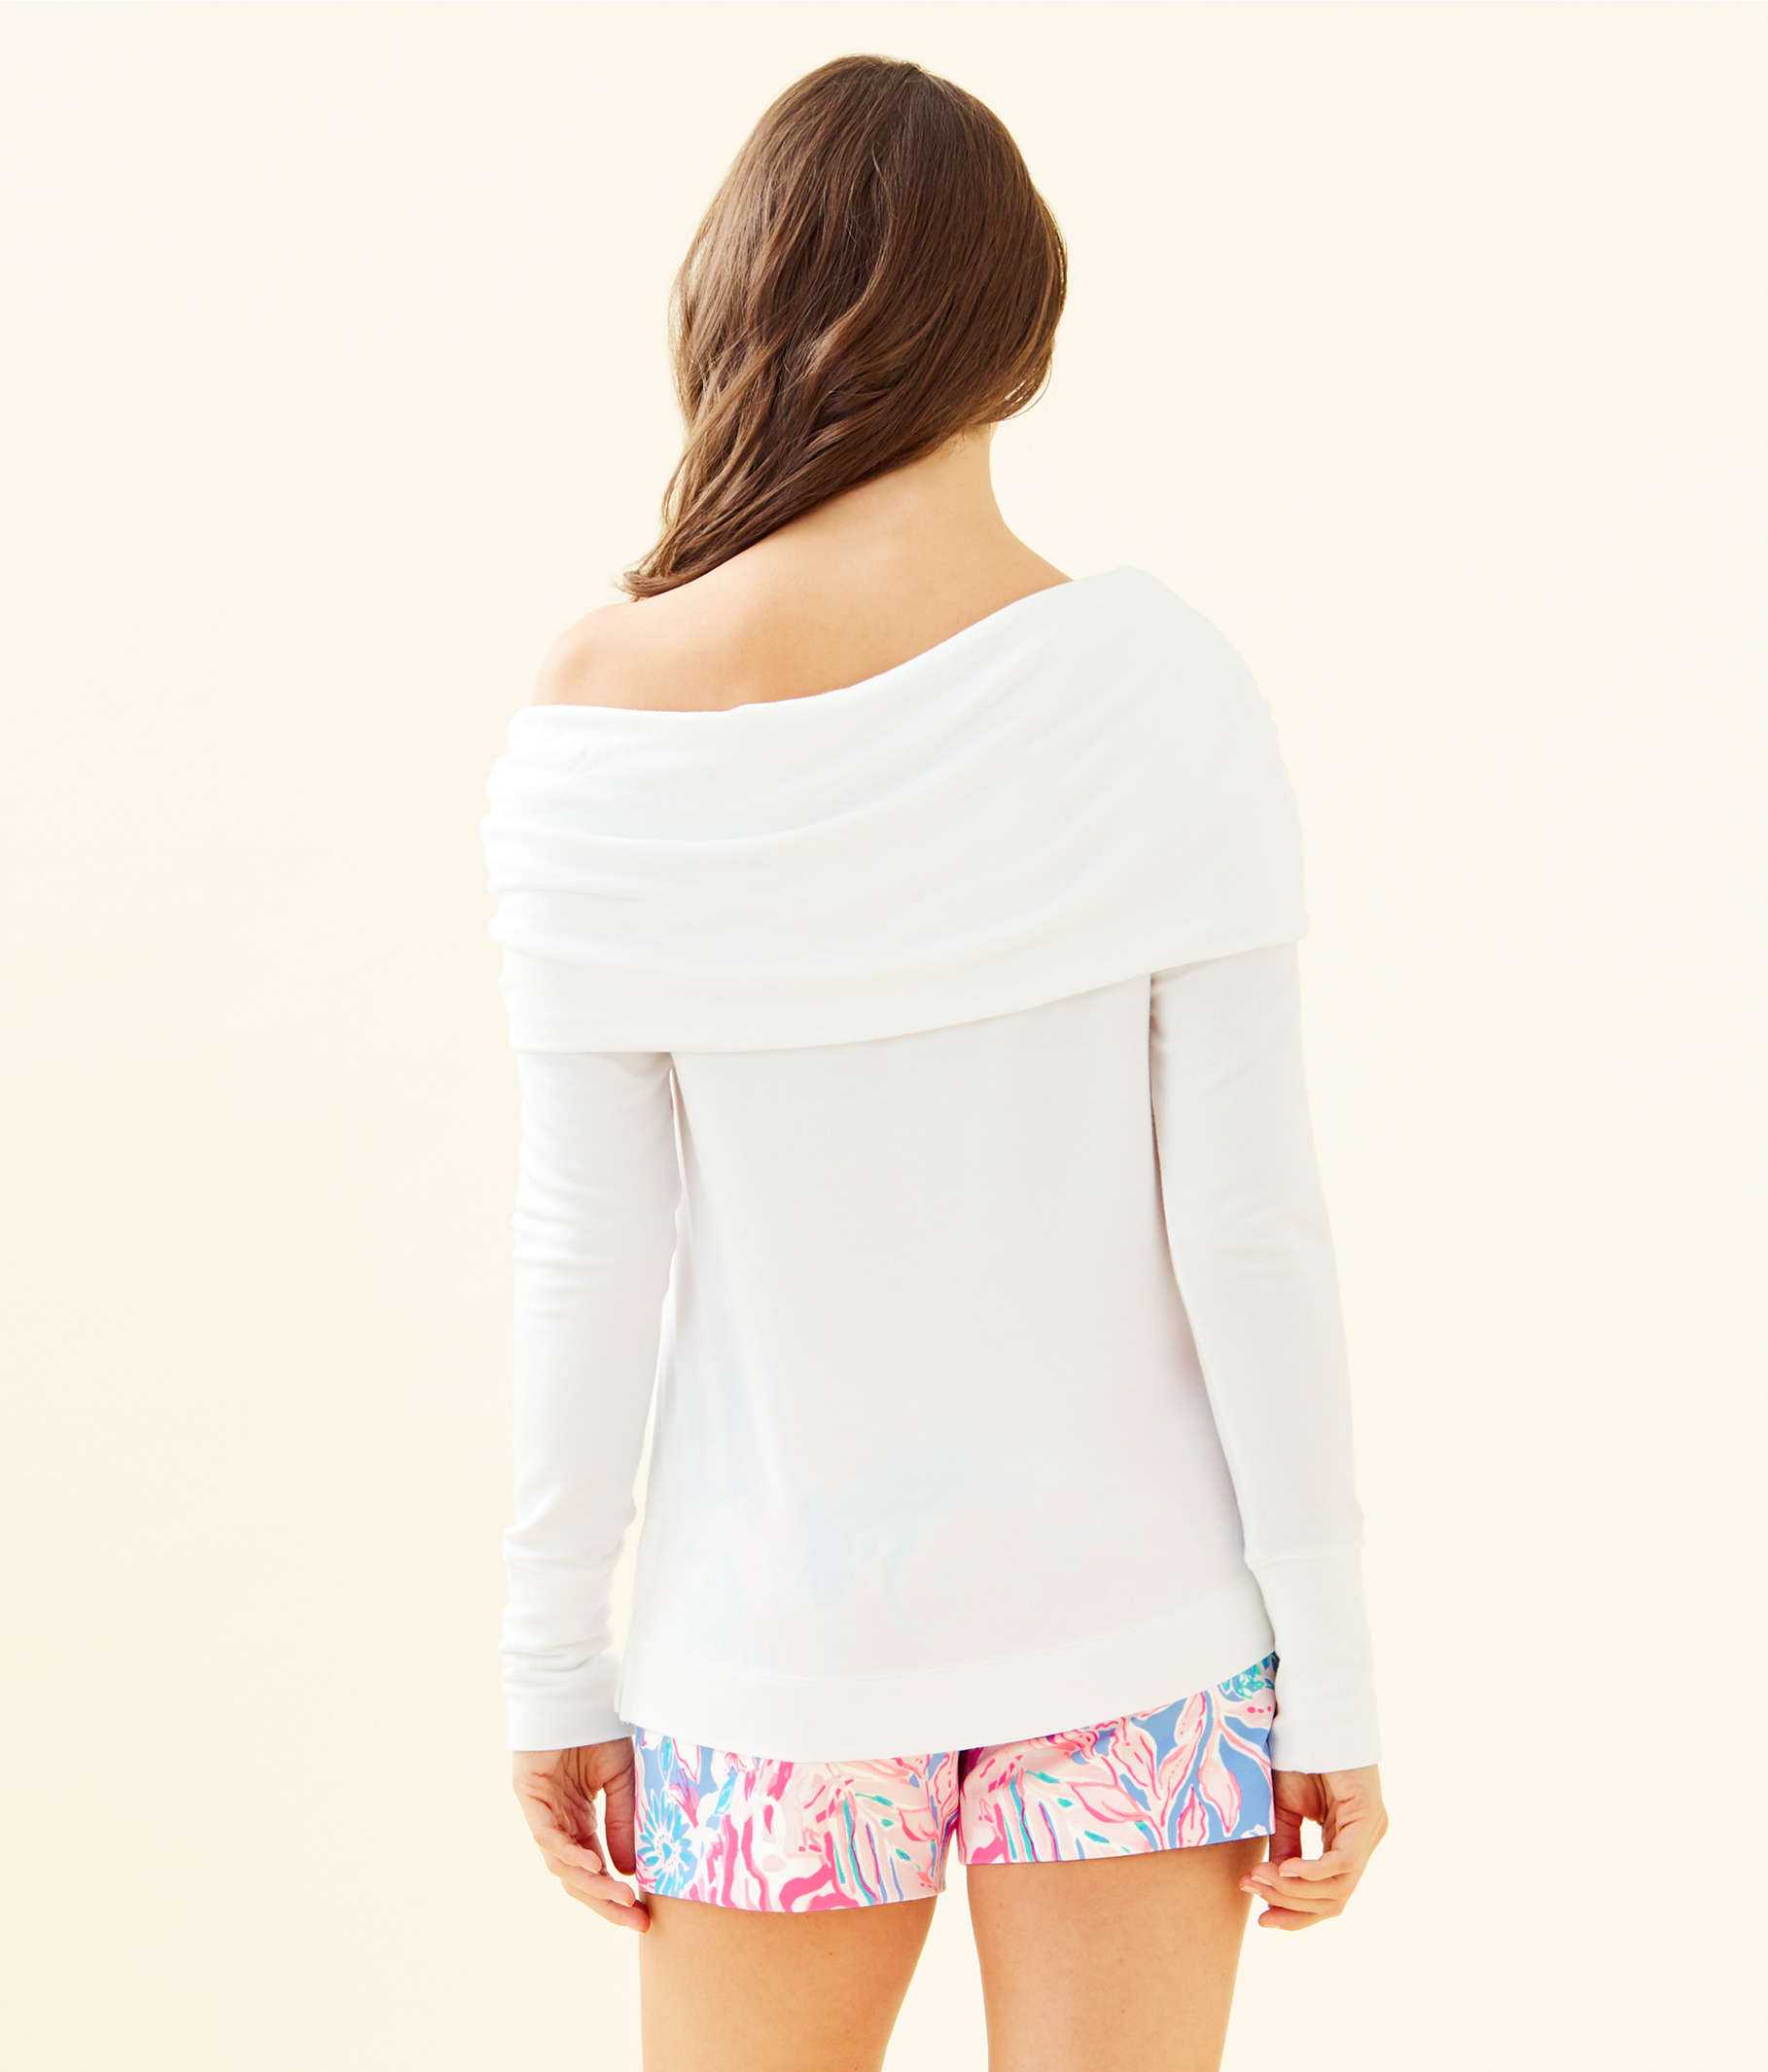 b582b9821b Belinda One-Shoulder Pullover | 003379 | Lilly Pulitzer